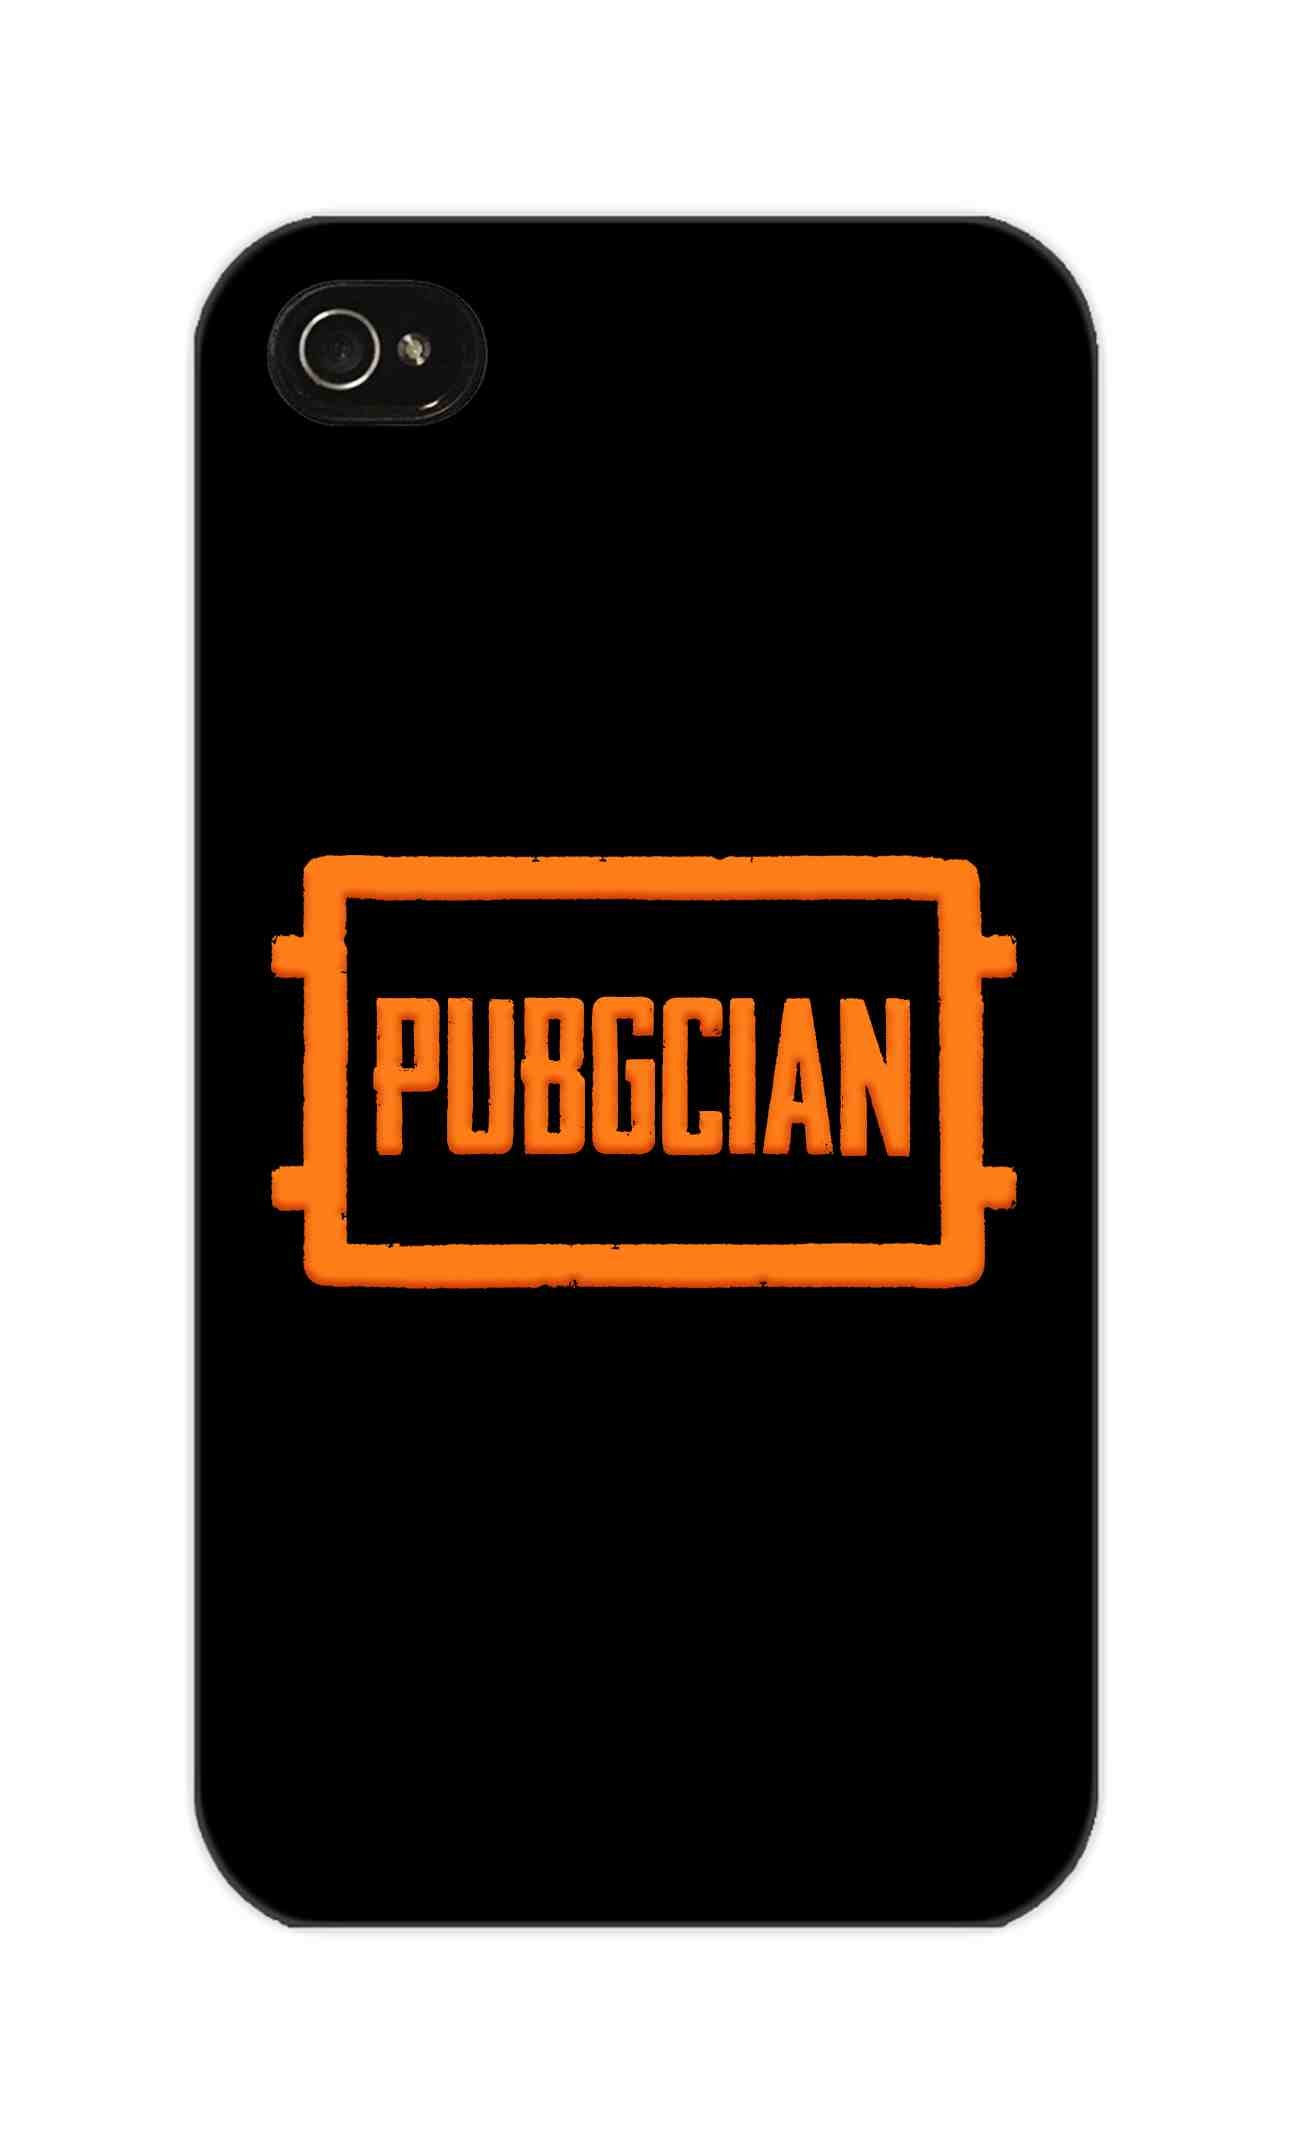 Pubgcian For Game Lovers iPhone 4 Mobile Cover Case - MADANYU